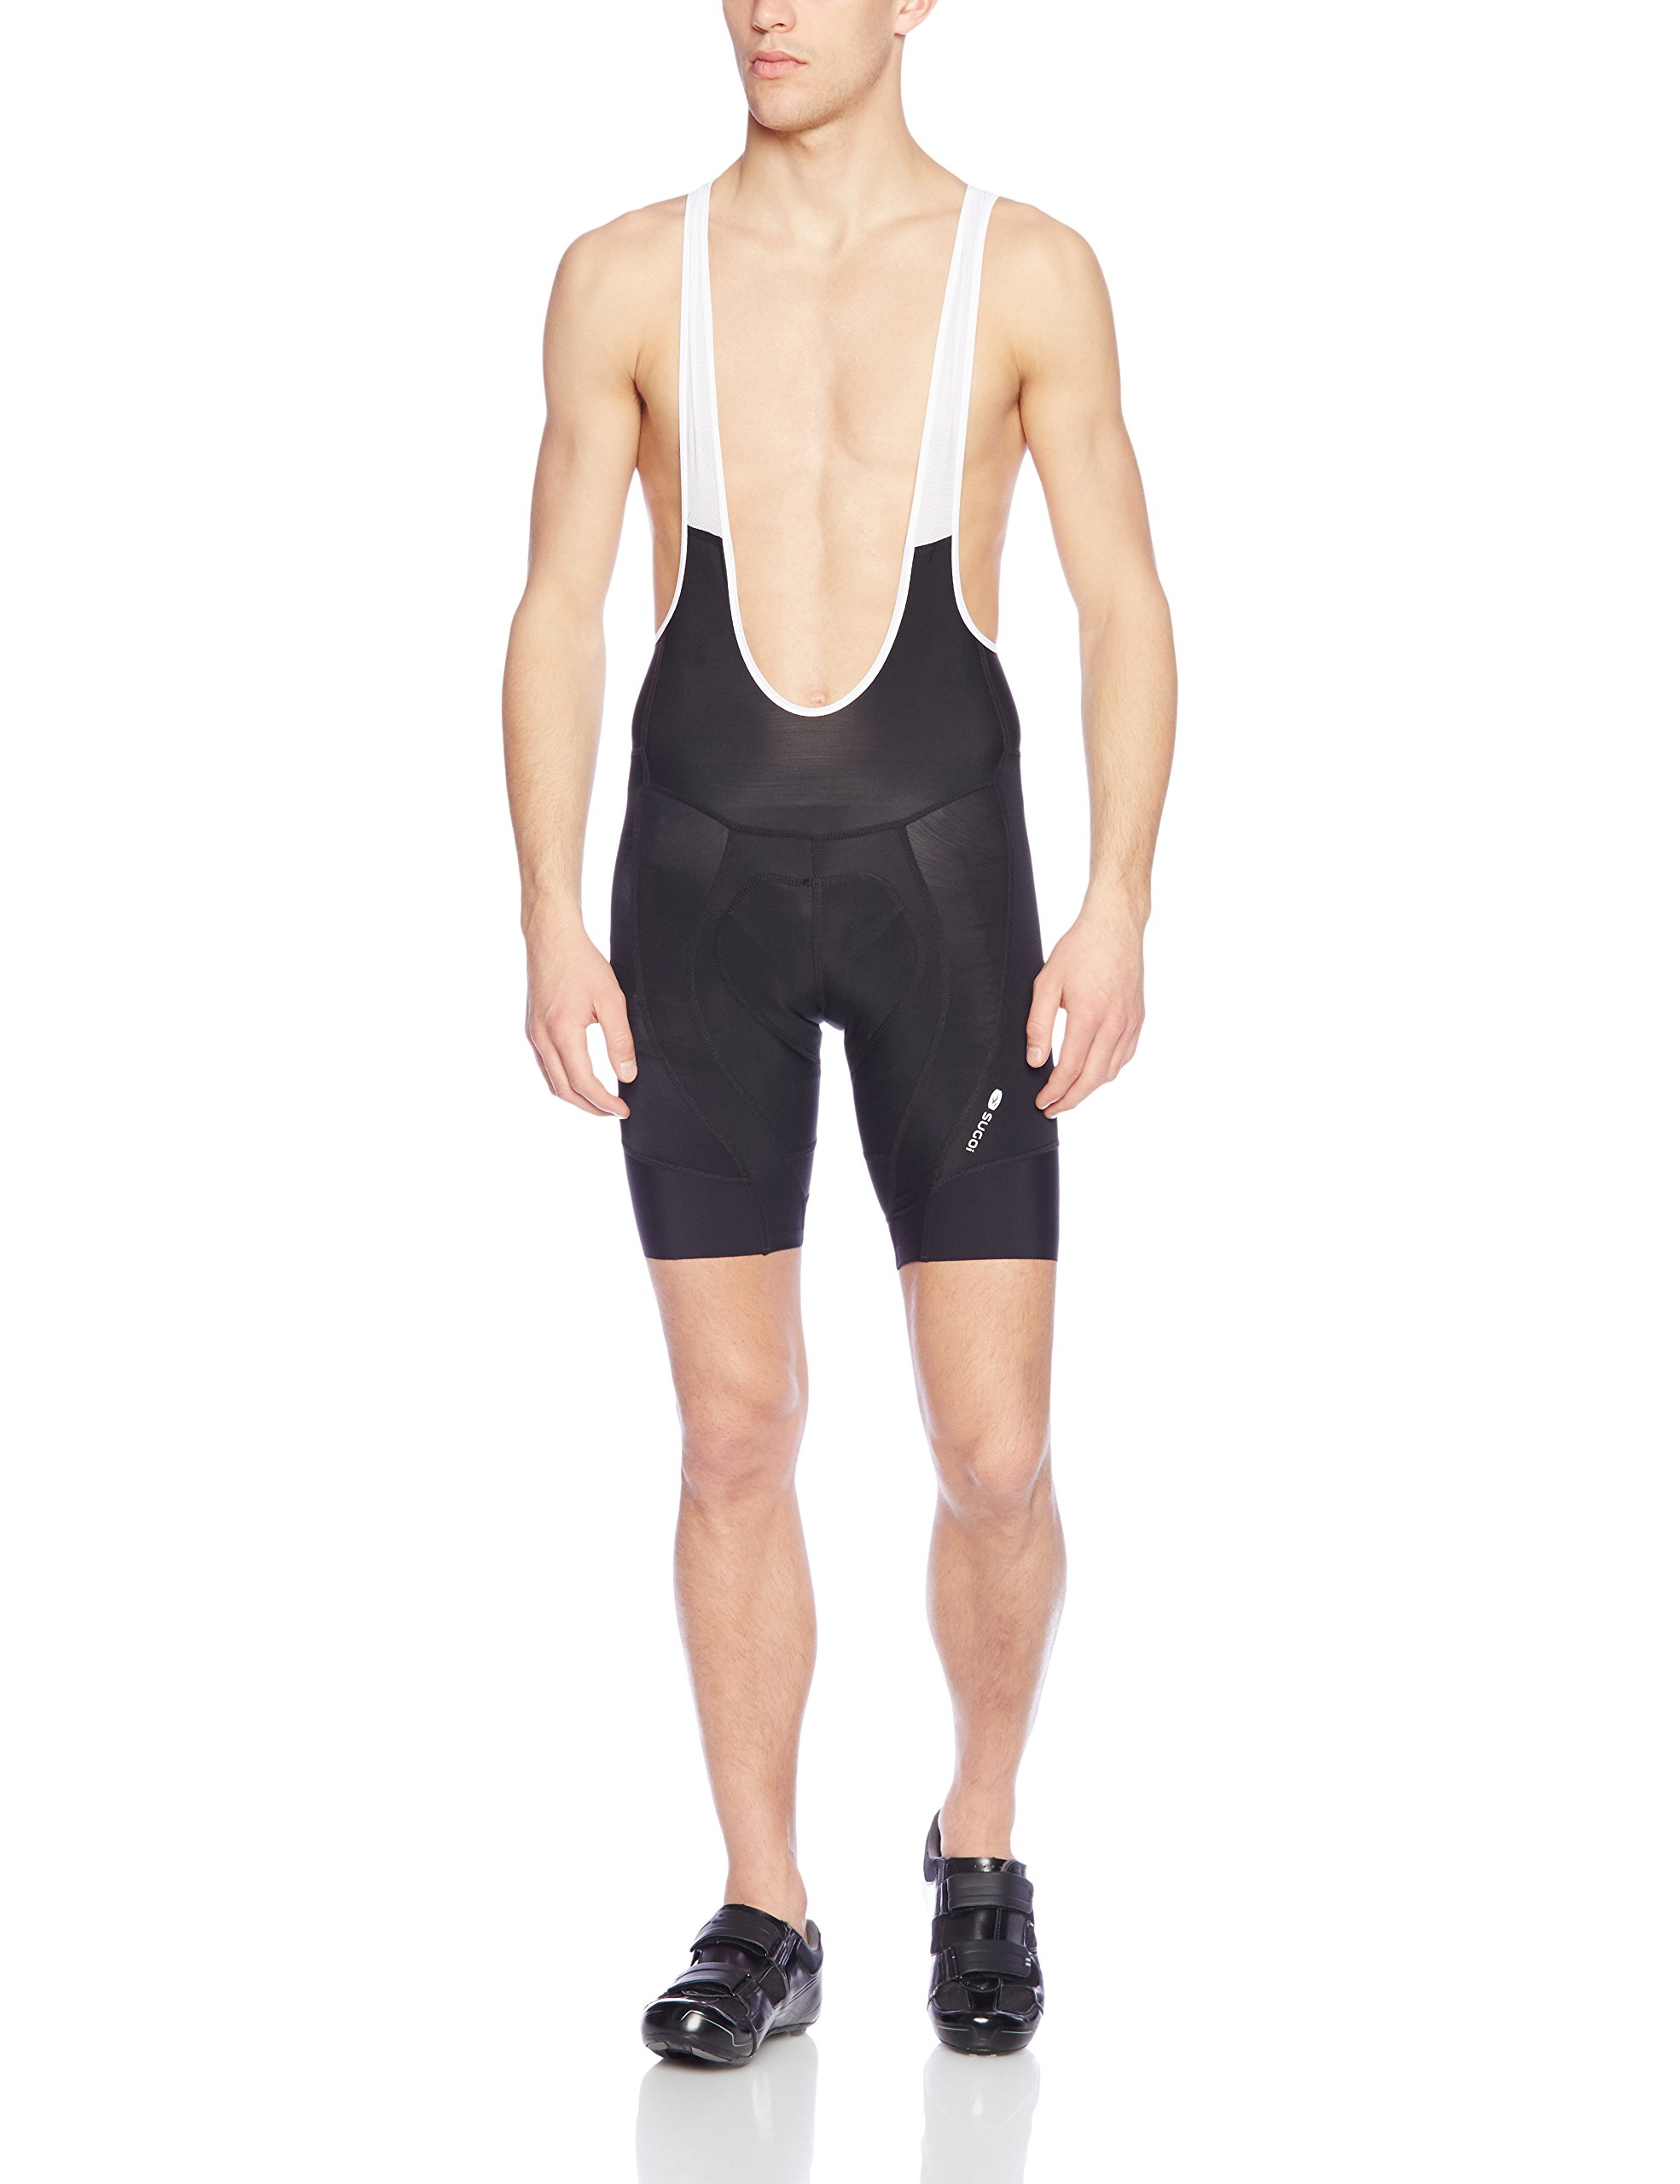 SUGOi RS Pro Bib Short - Men's Black, M